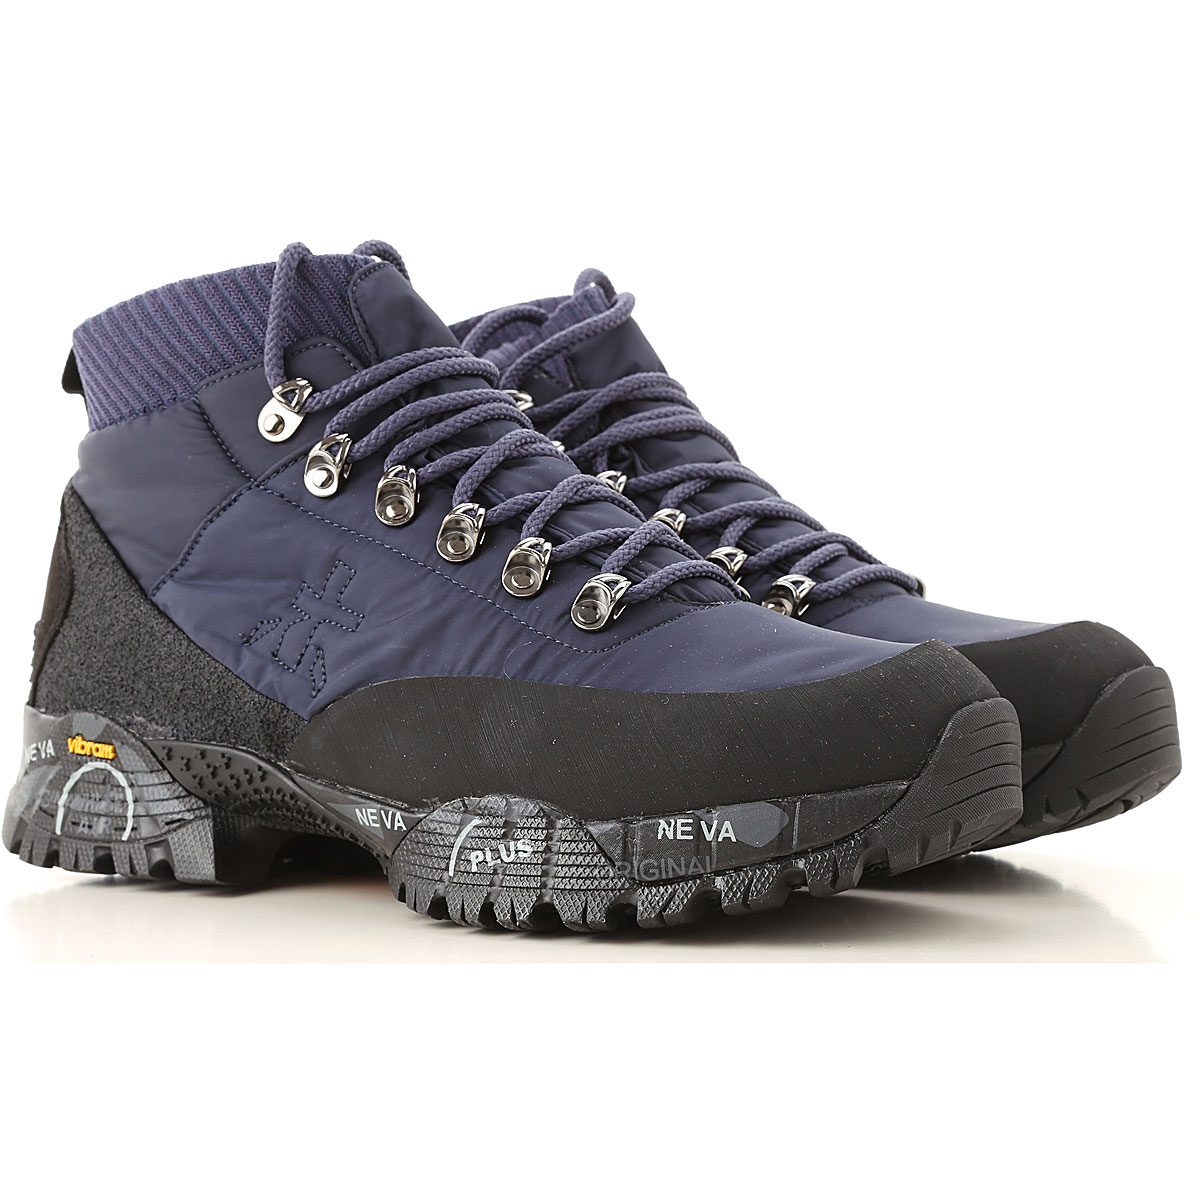 Premiata Boots for Men, Booties, Blue, Leather, 2019, 10 10.5 8 9